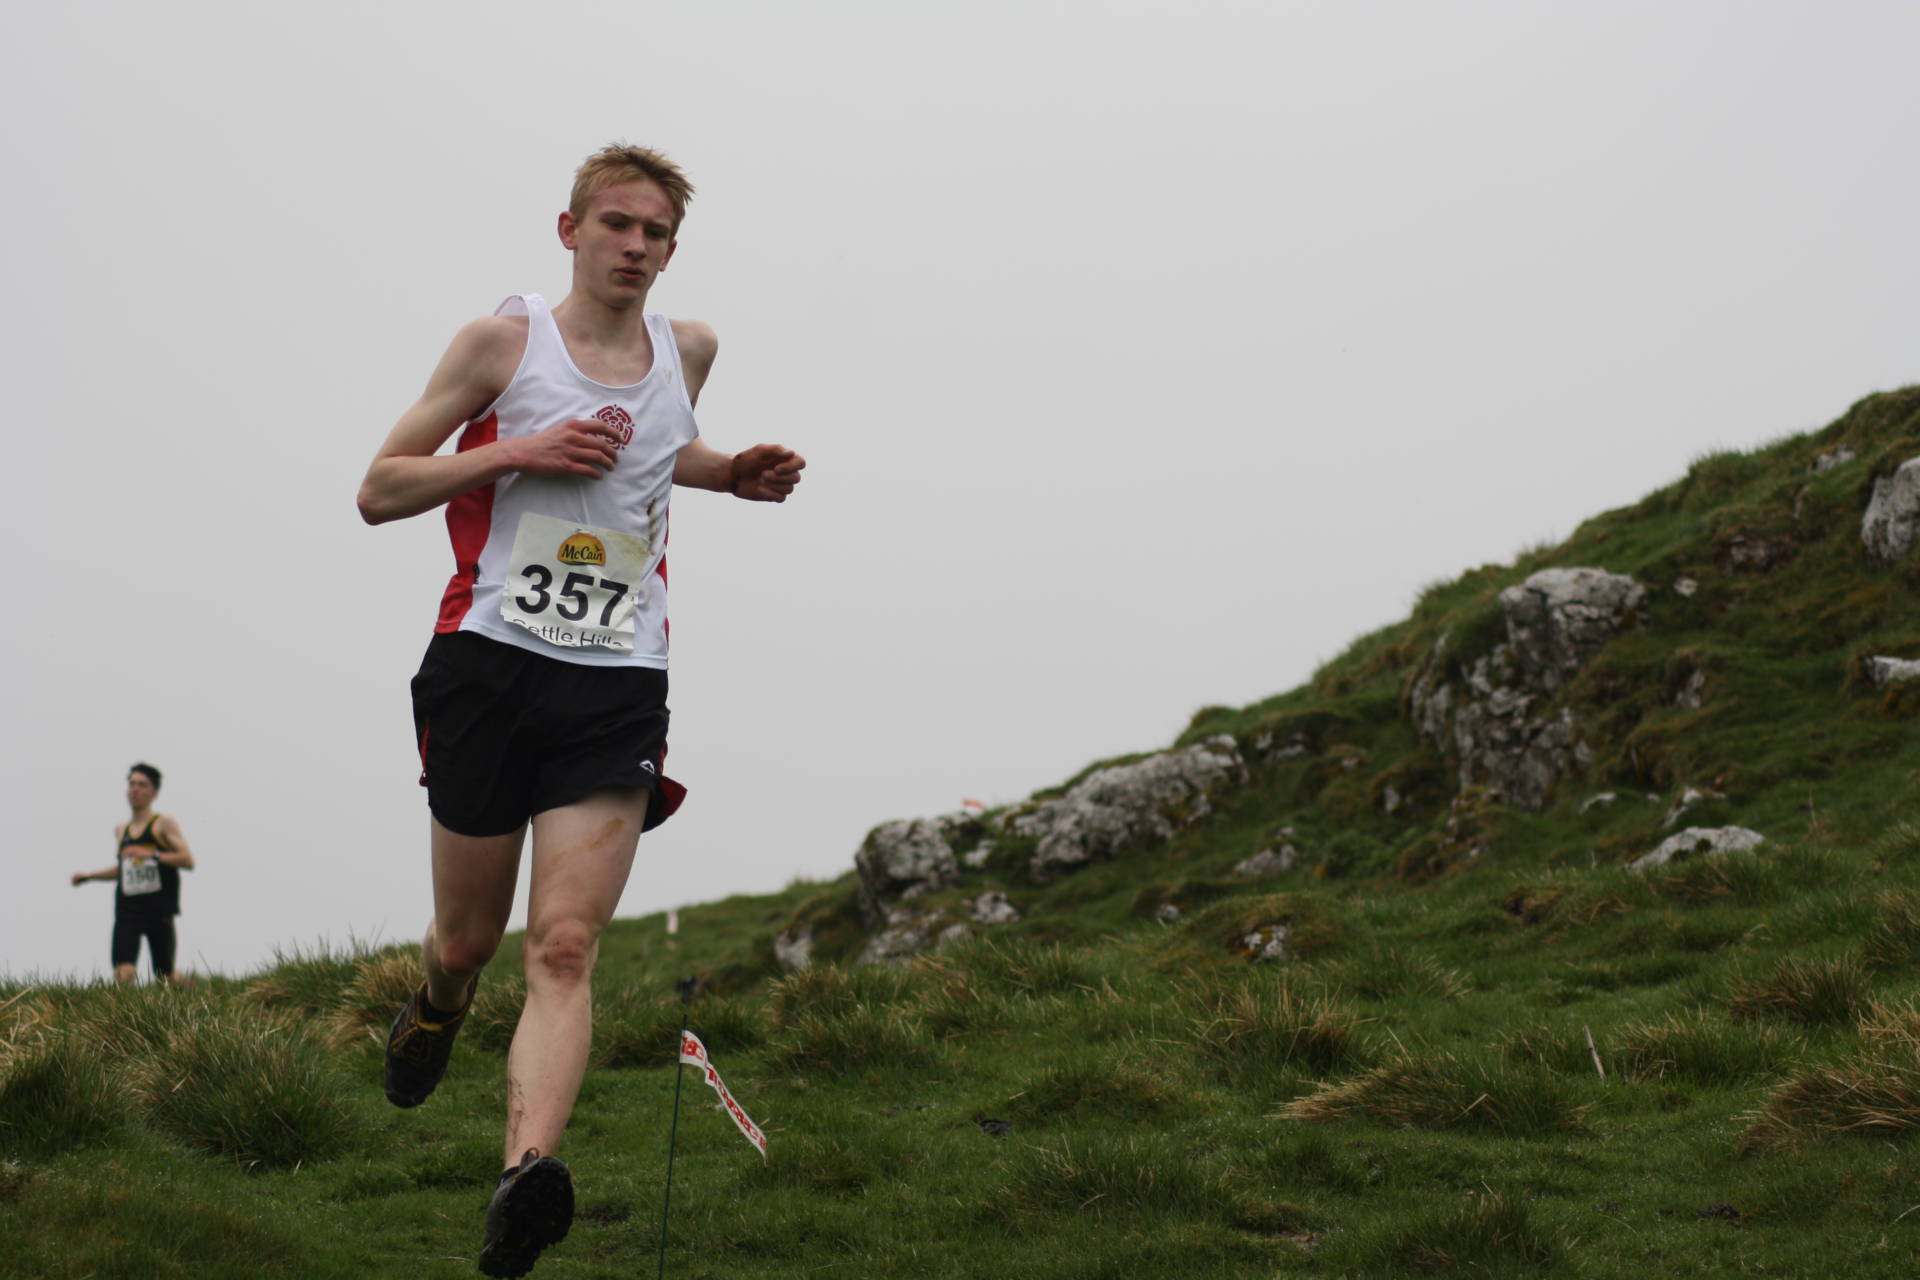 Inter-Counties Fell Championships at Settle